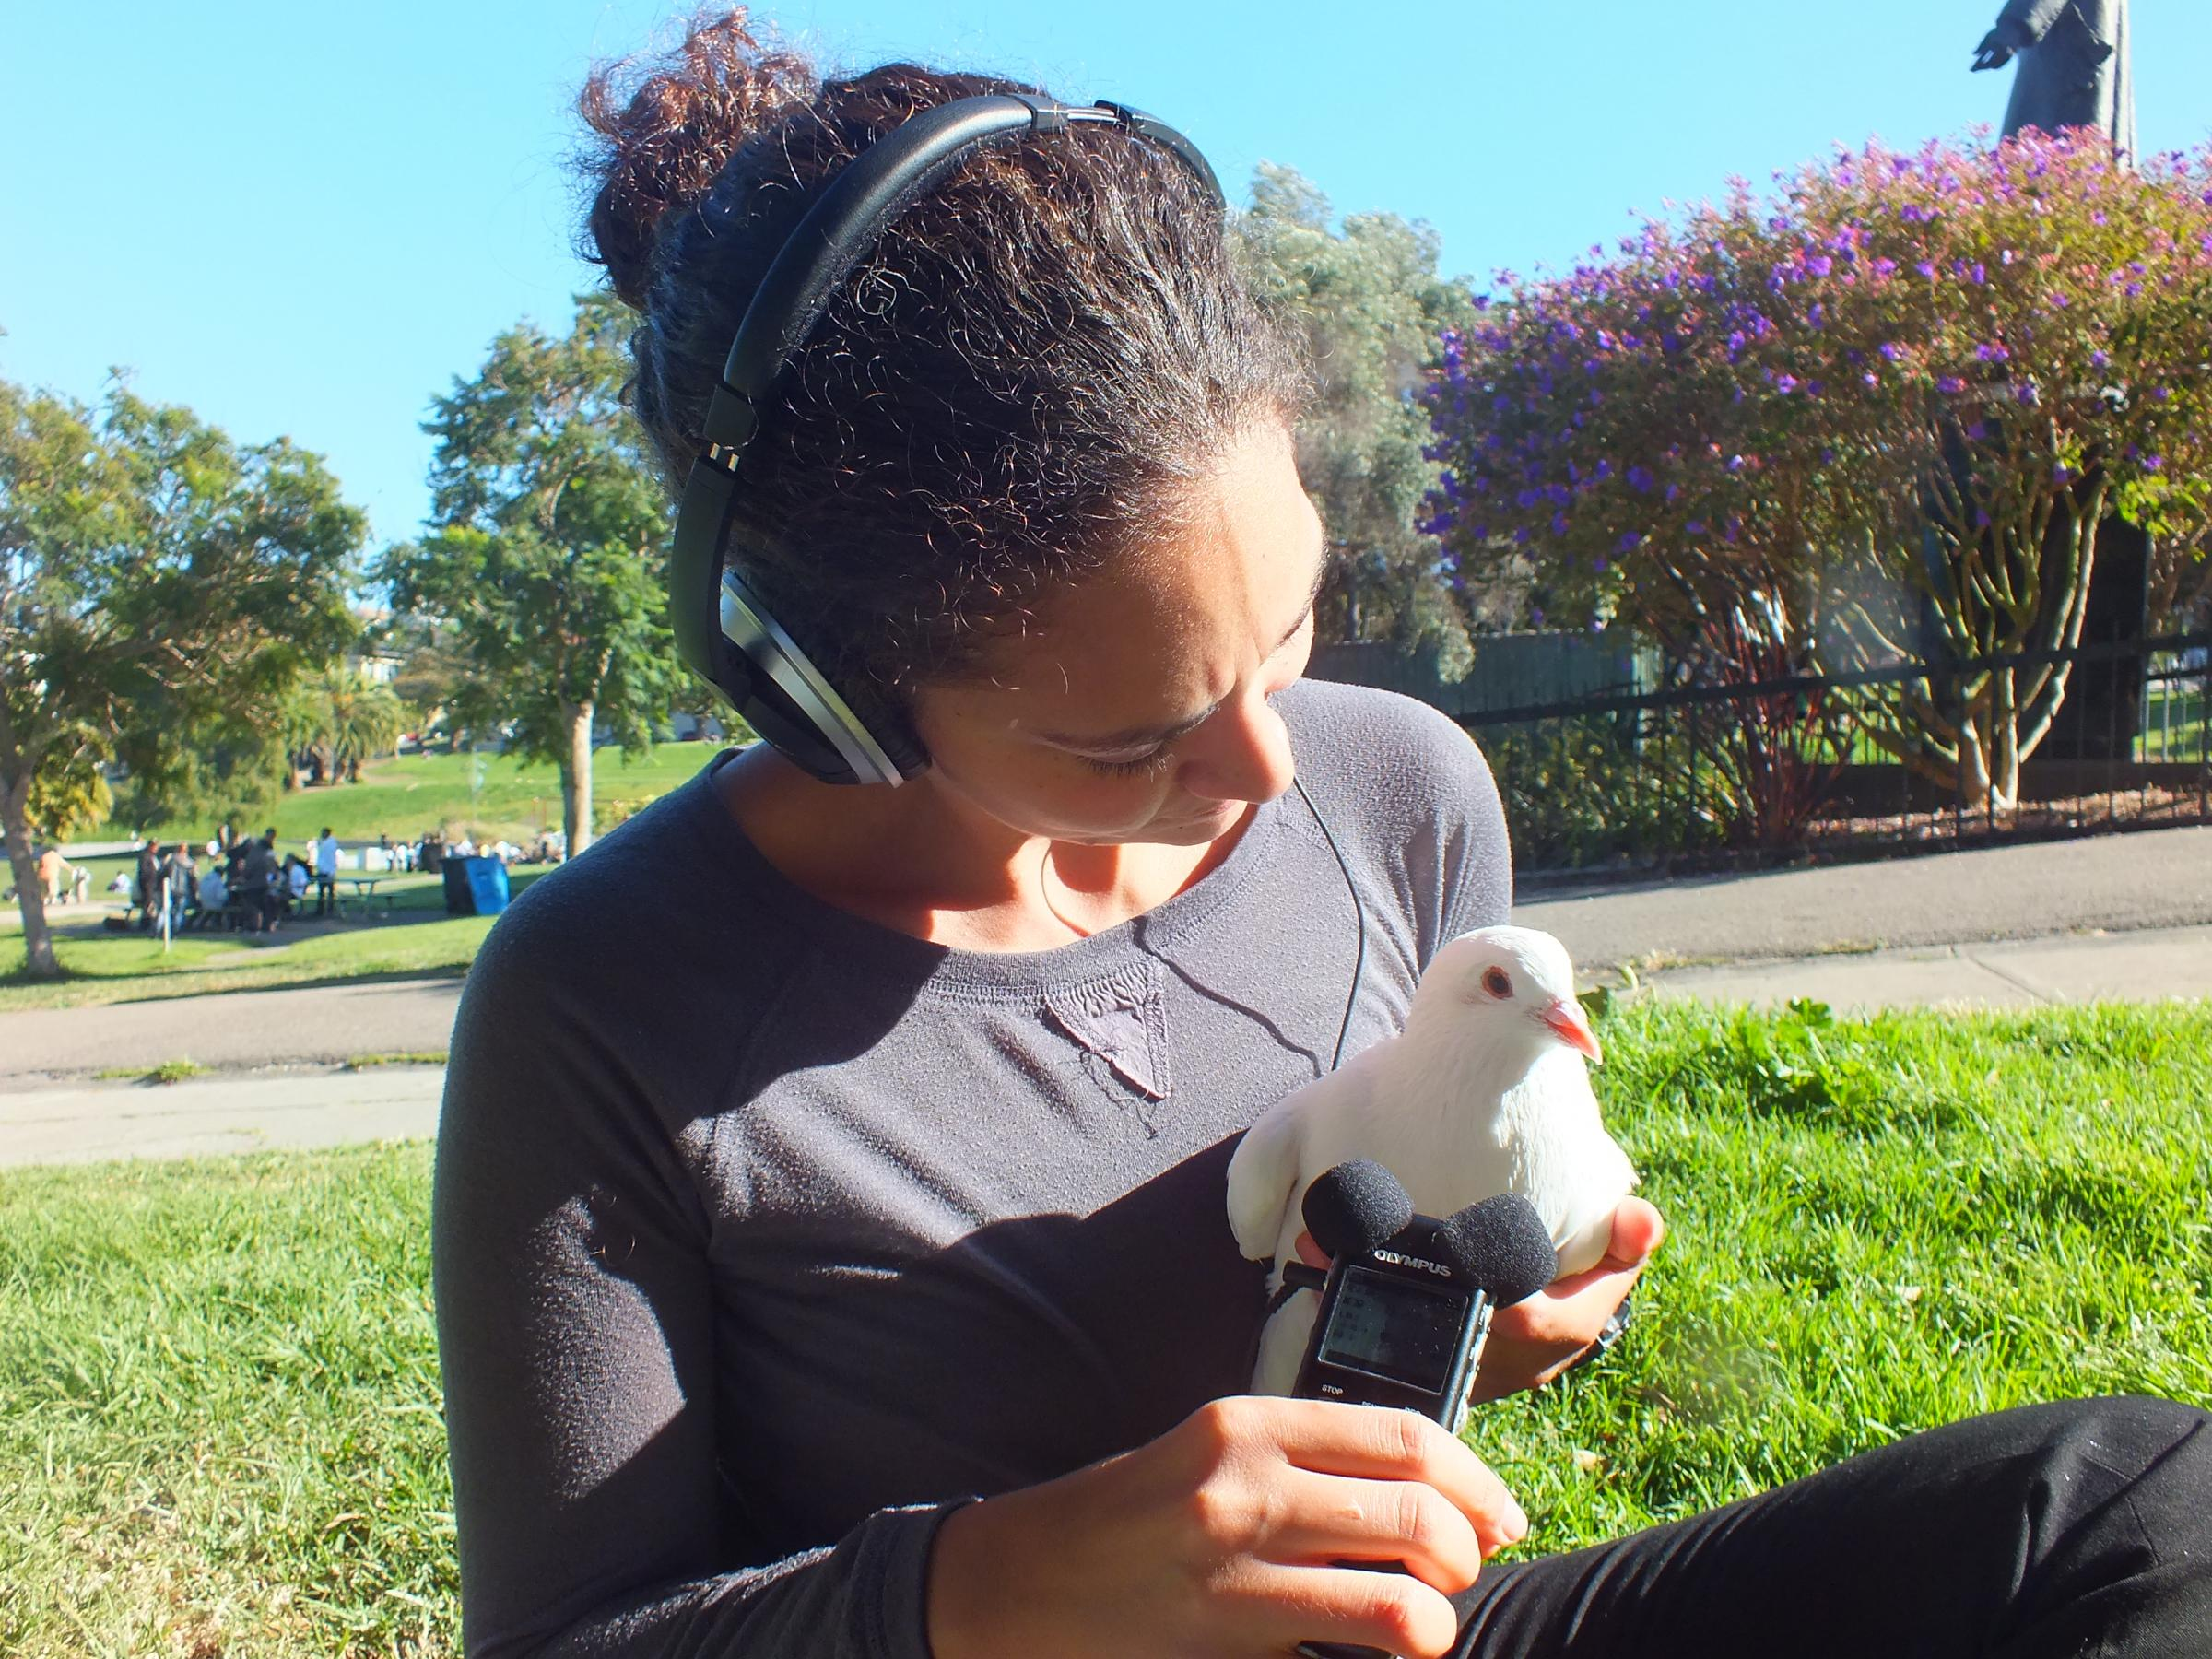 Caption: Reporter Martina Castro interviews a pigeon, Credit: Elizabeth Young